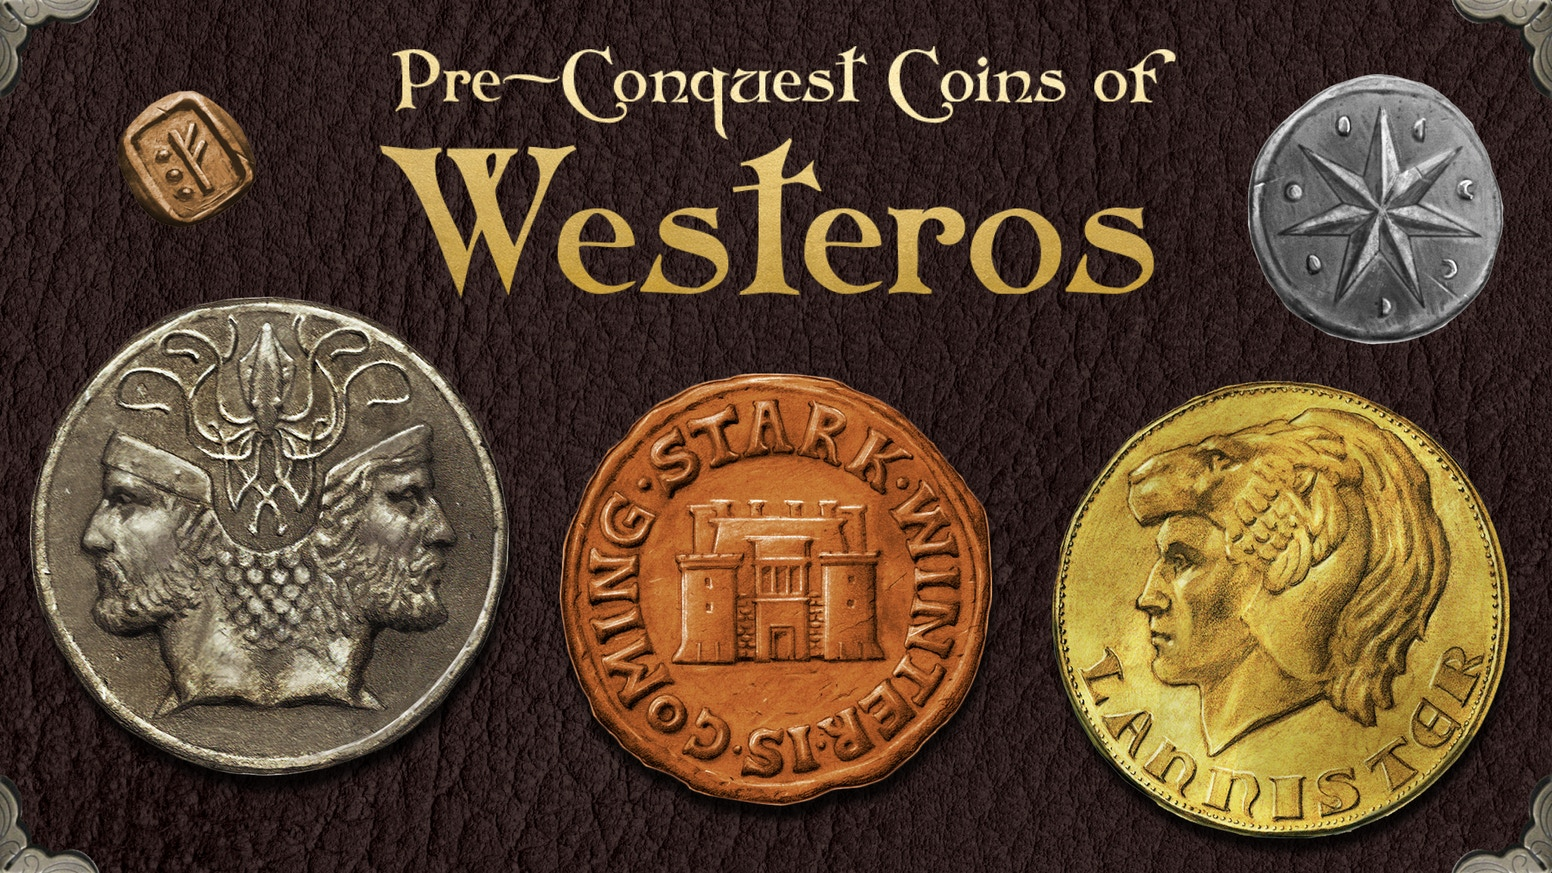 Official metal coins presented in a Coin Map of Westeros, licensed by George R. R. Martin, the author of A Song of Ice and Fire